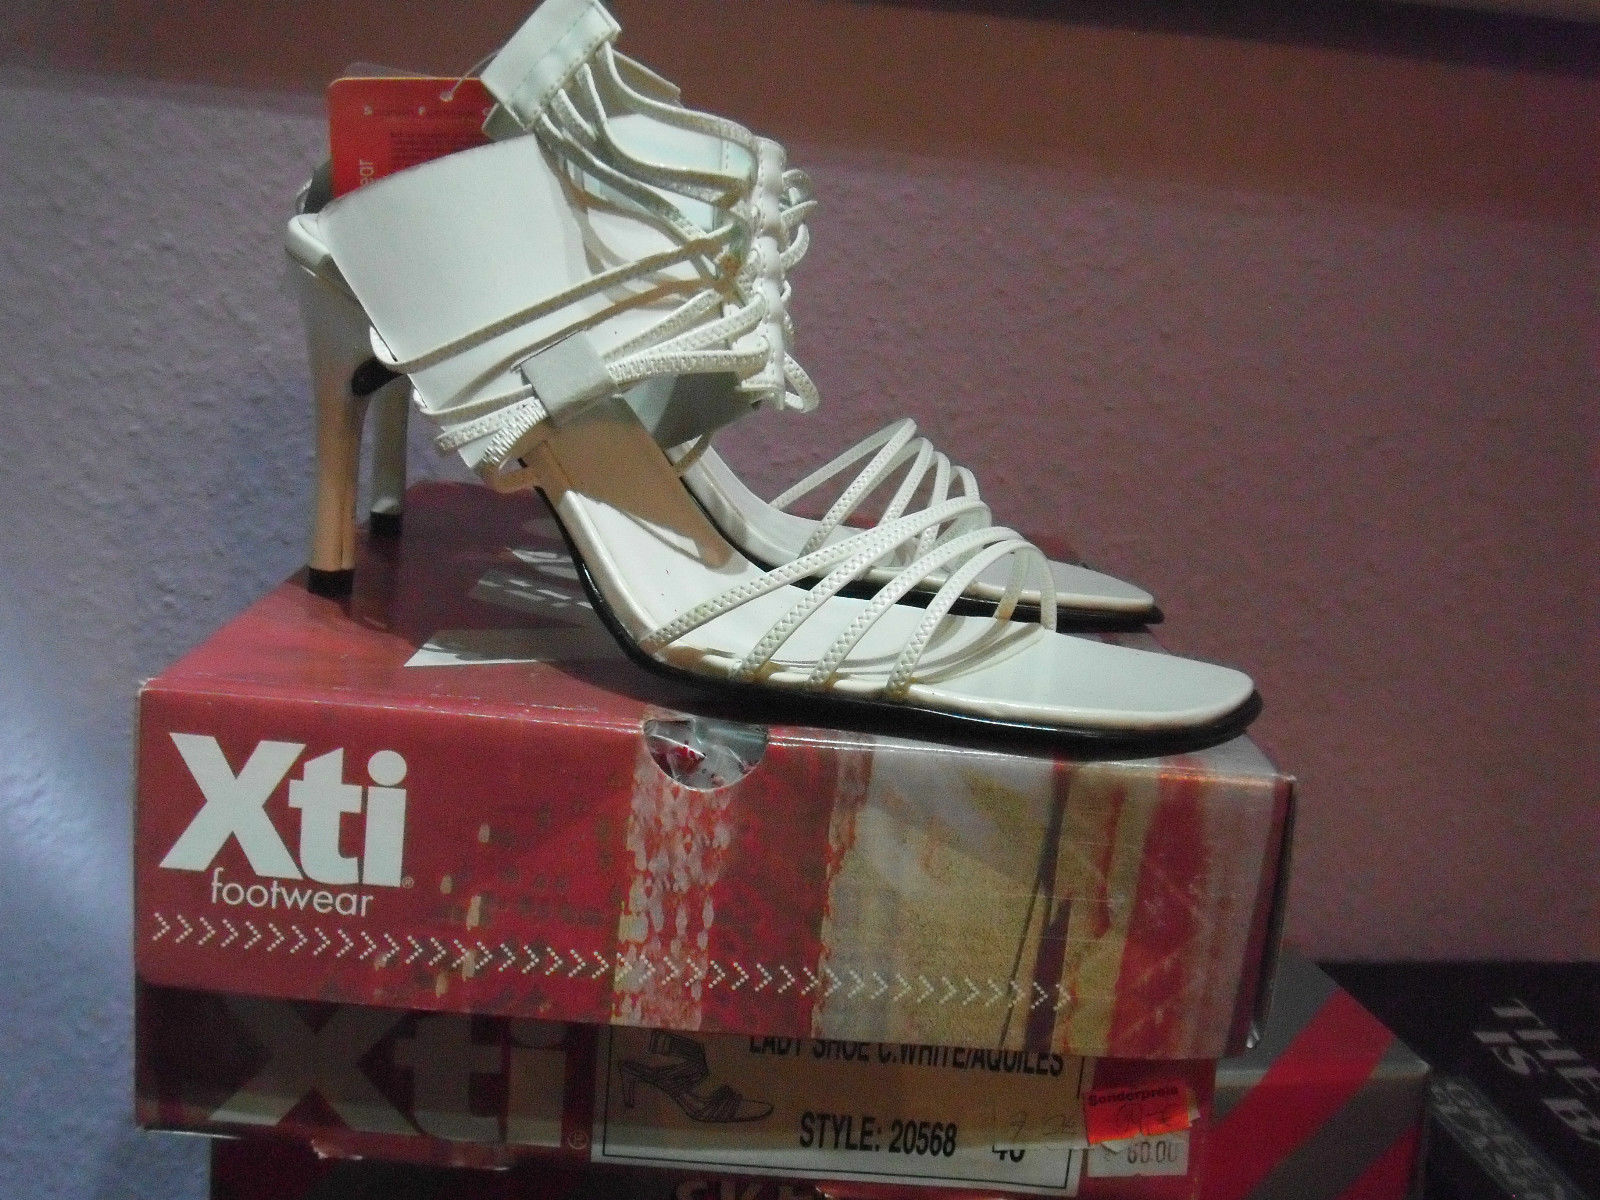 XTi Lady shoes Spanish Court High Heels brautkleidschuhe Size 40